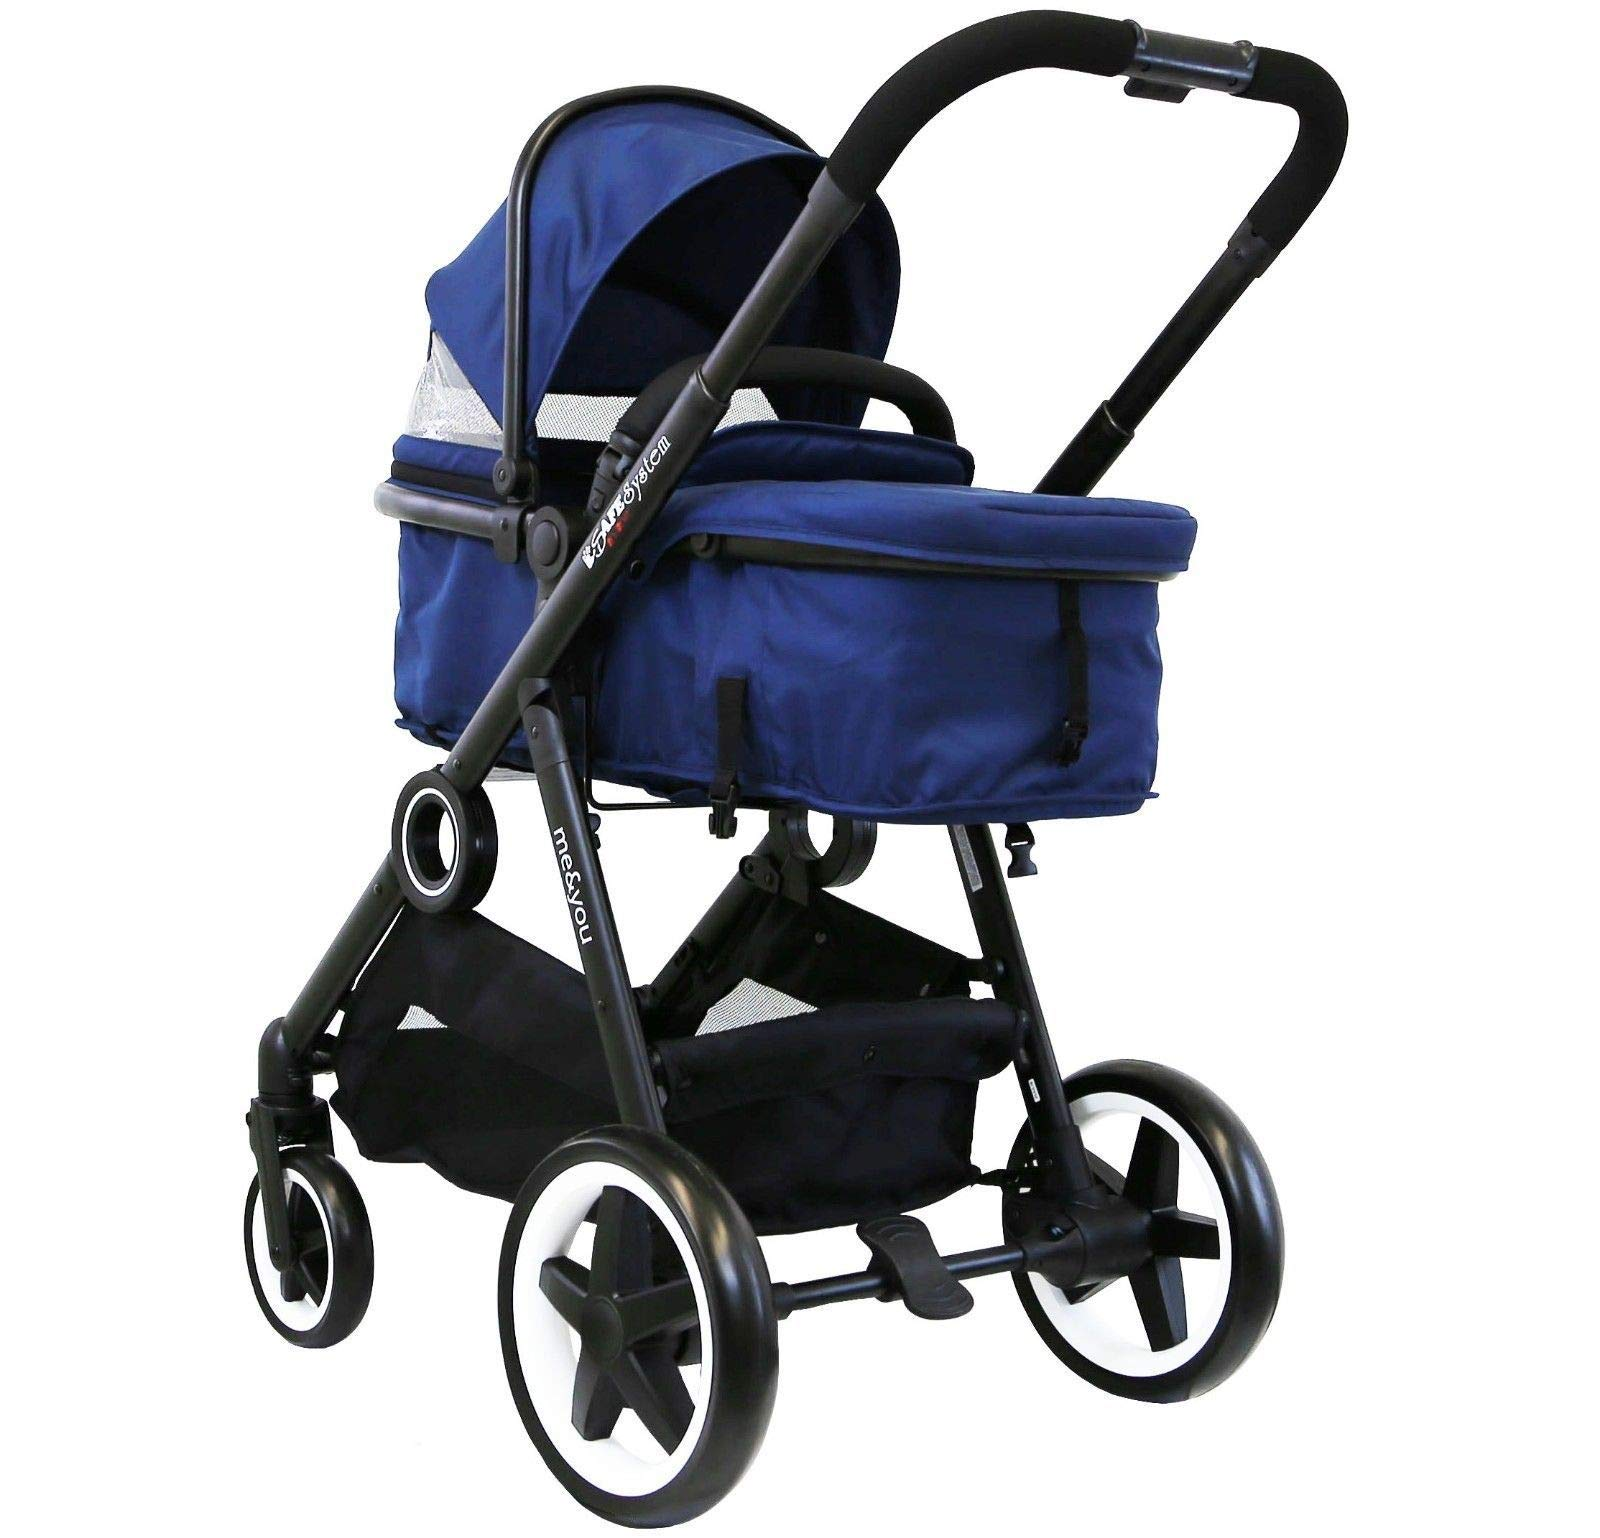 iSafe Tandem Pram me&You - 2 Tone Navy + X 2 Foot Muff +x 2 Rain Cover  iSafe